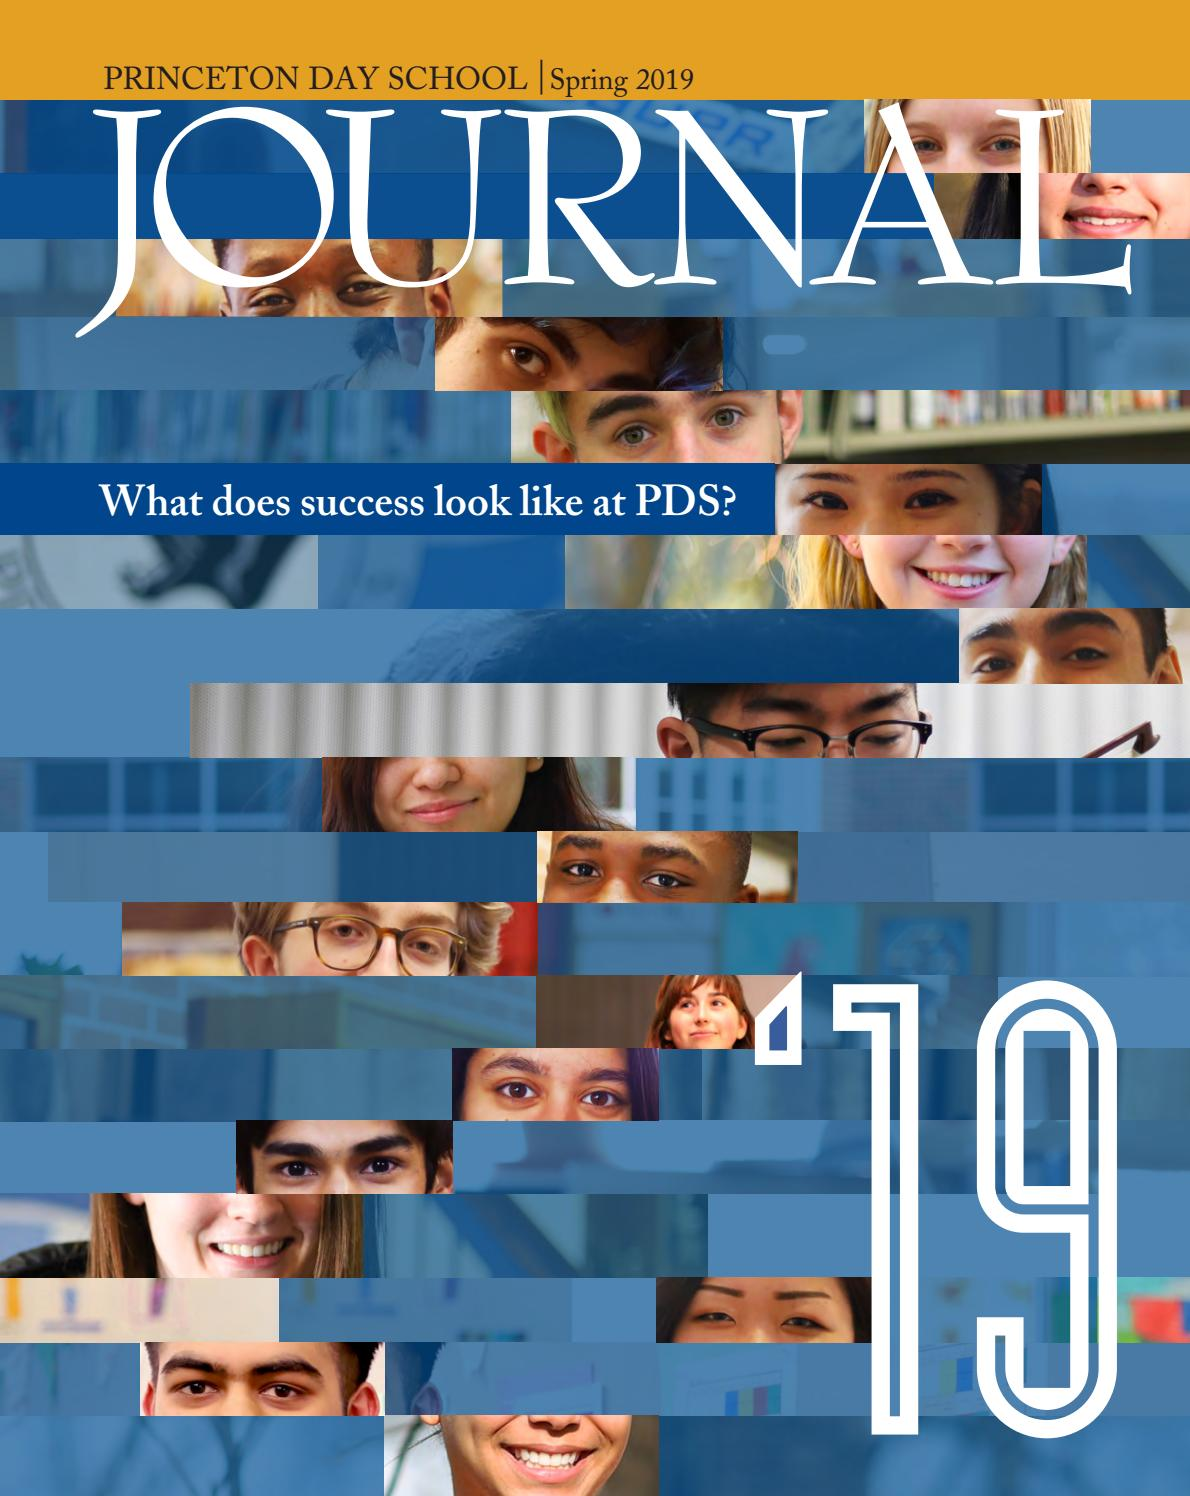 e64d5afef Princeton Day School Spring 2019 Journal by Princeton Day School - issuu